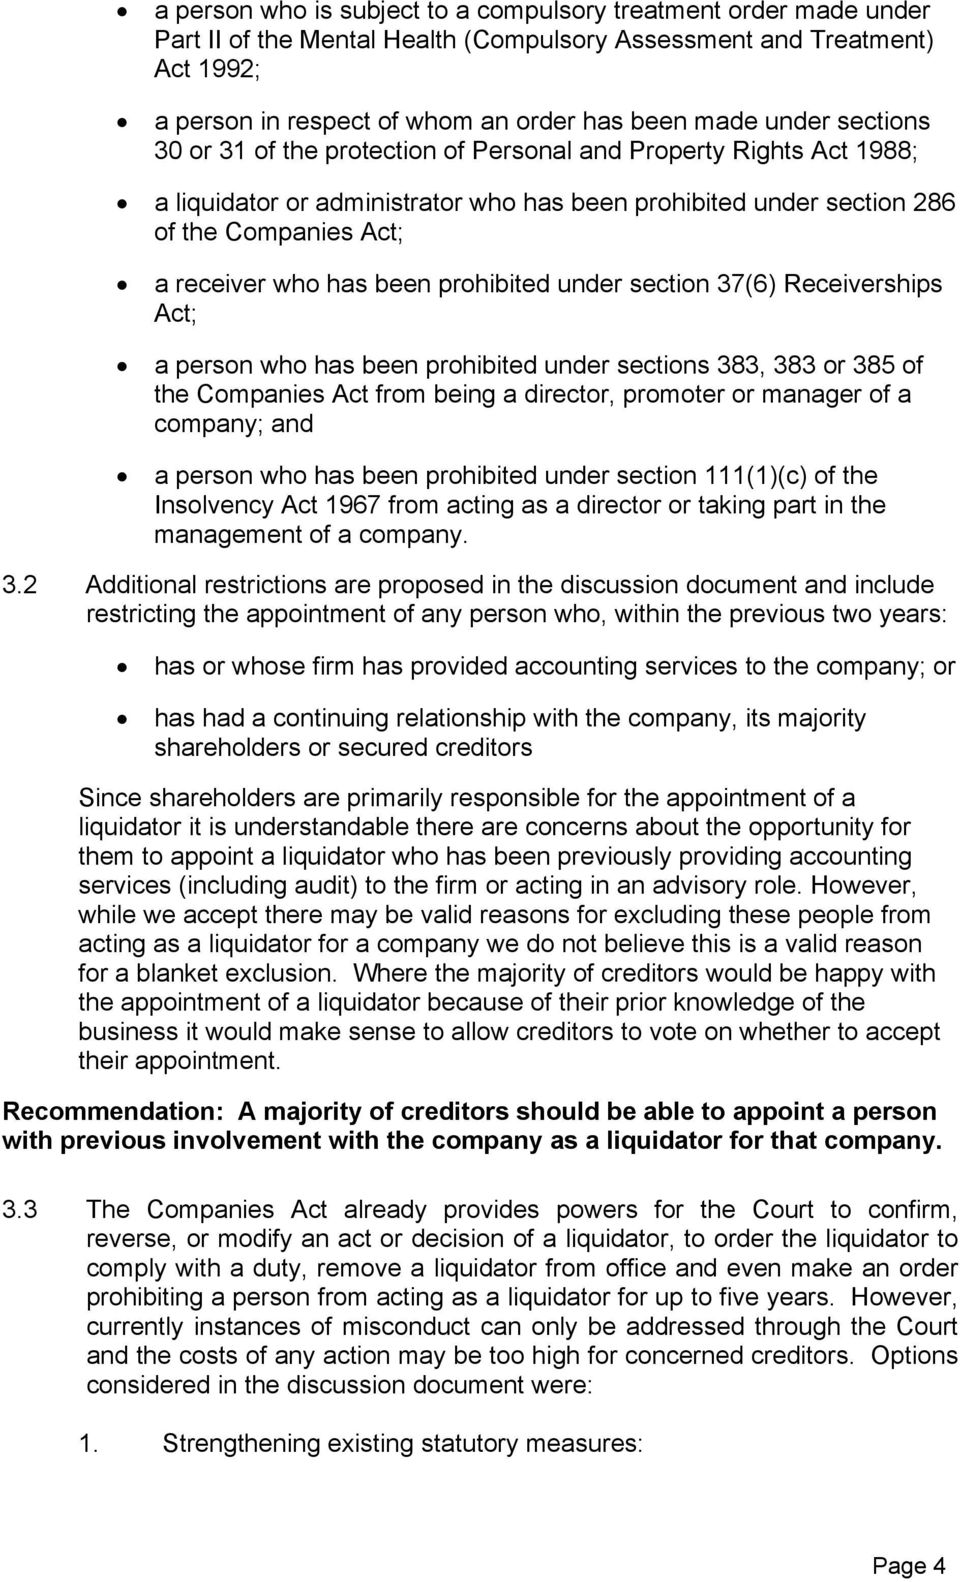 been prohibited under section 37(6) Receiverships Act; a person who has been prohibited under sections 383, 383 or 385 of the Companies Act from being a director, promoter or manager of a company;